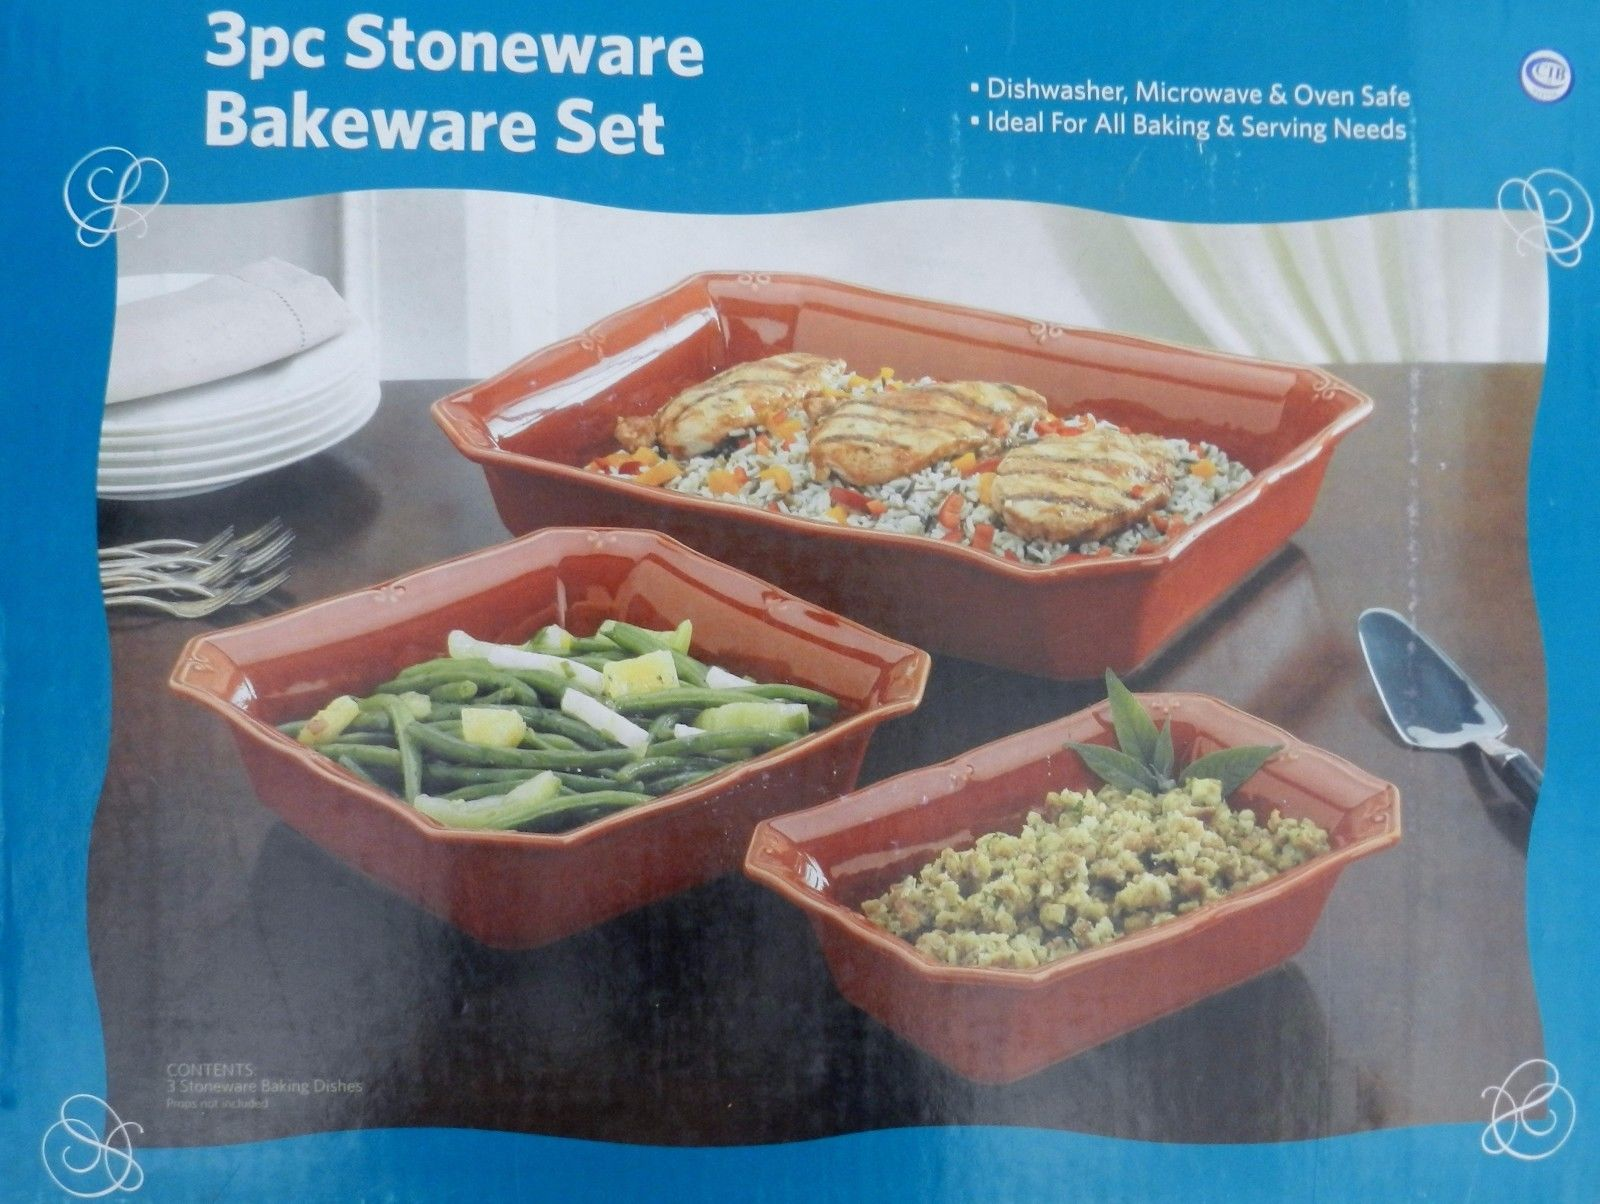 3 Piece Brick Dishwasher And Oven Safe StoNeware Bakeware Set by